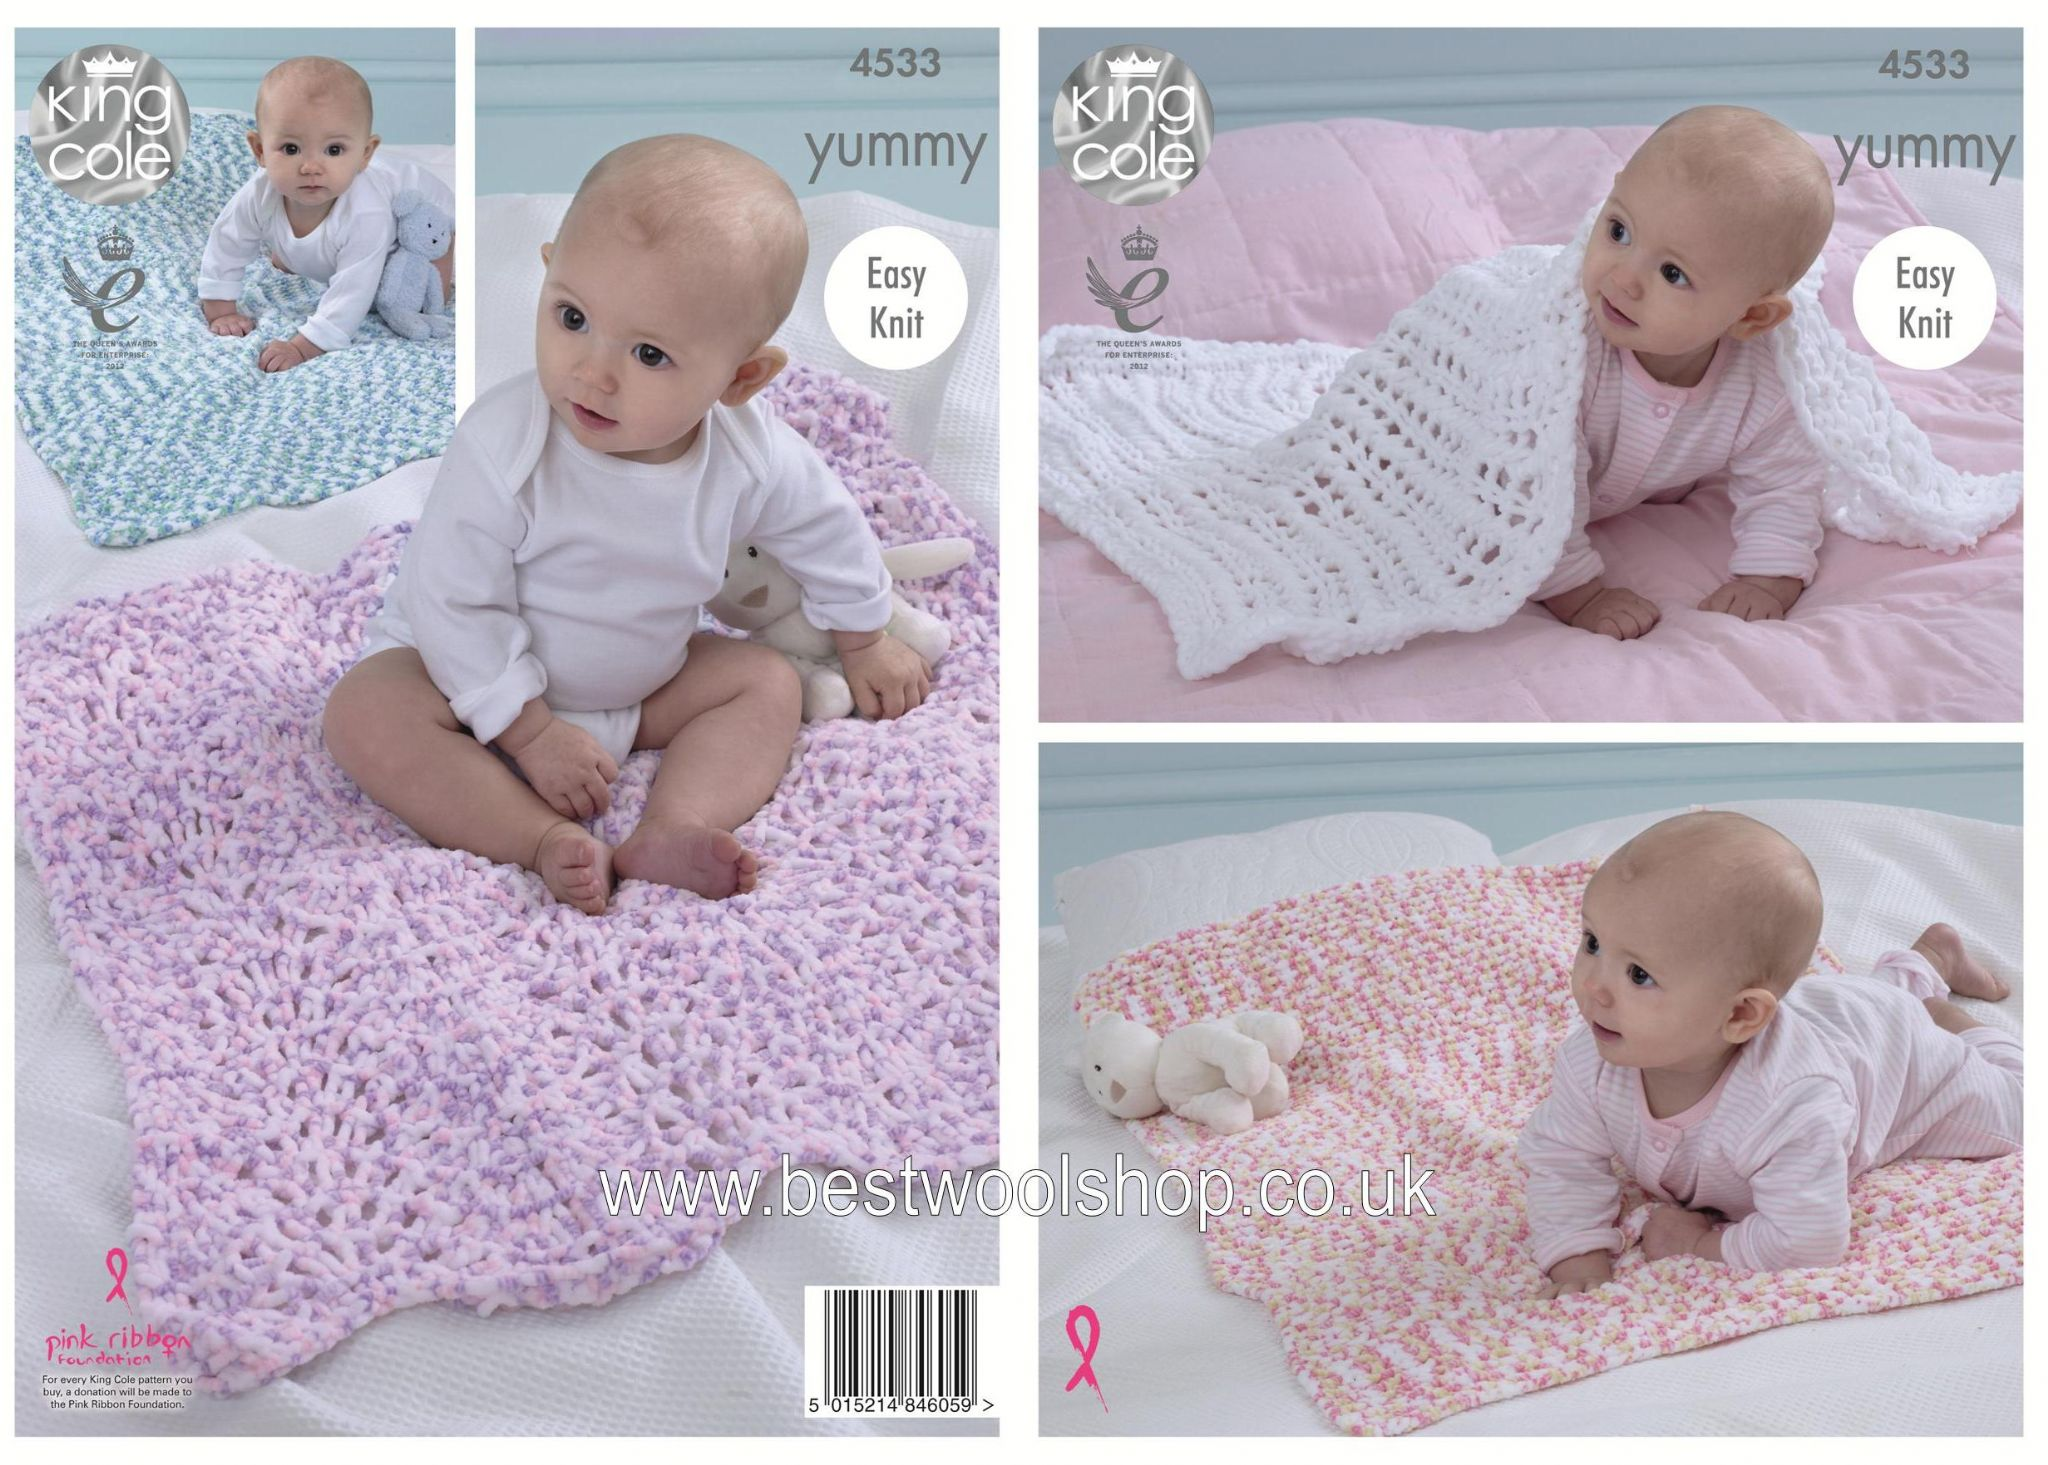 4533 King Cole Yummy Chunky Easy Knit Baby Blanket Knitting Pattern